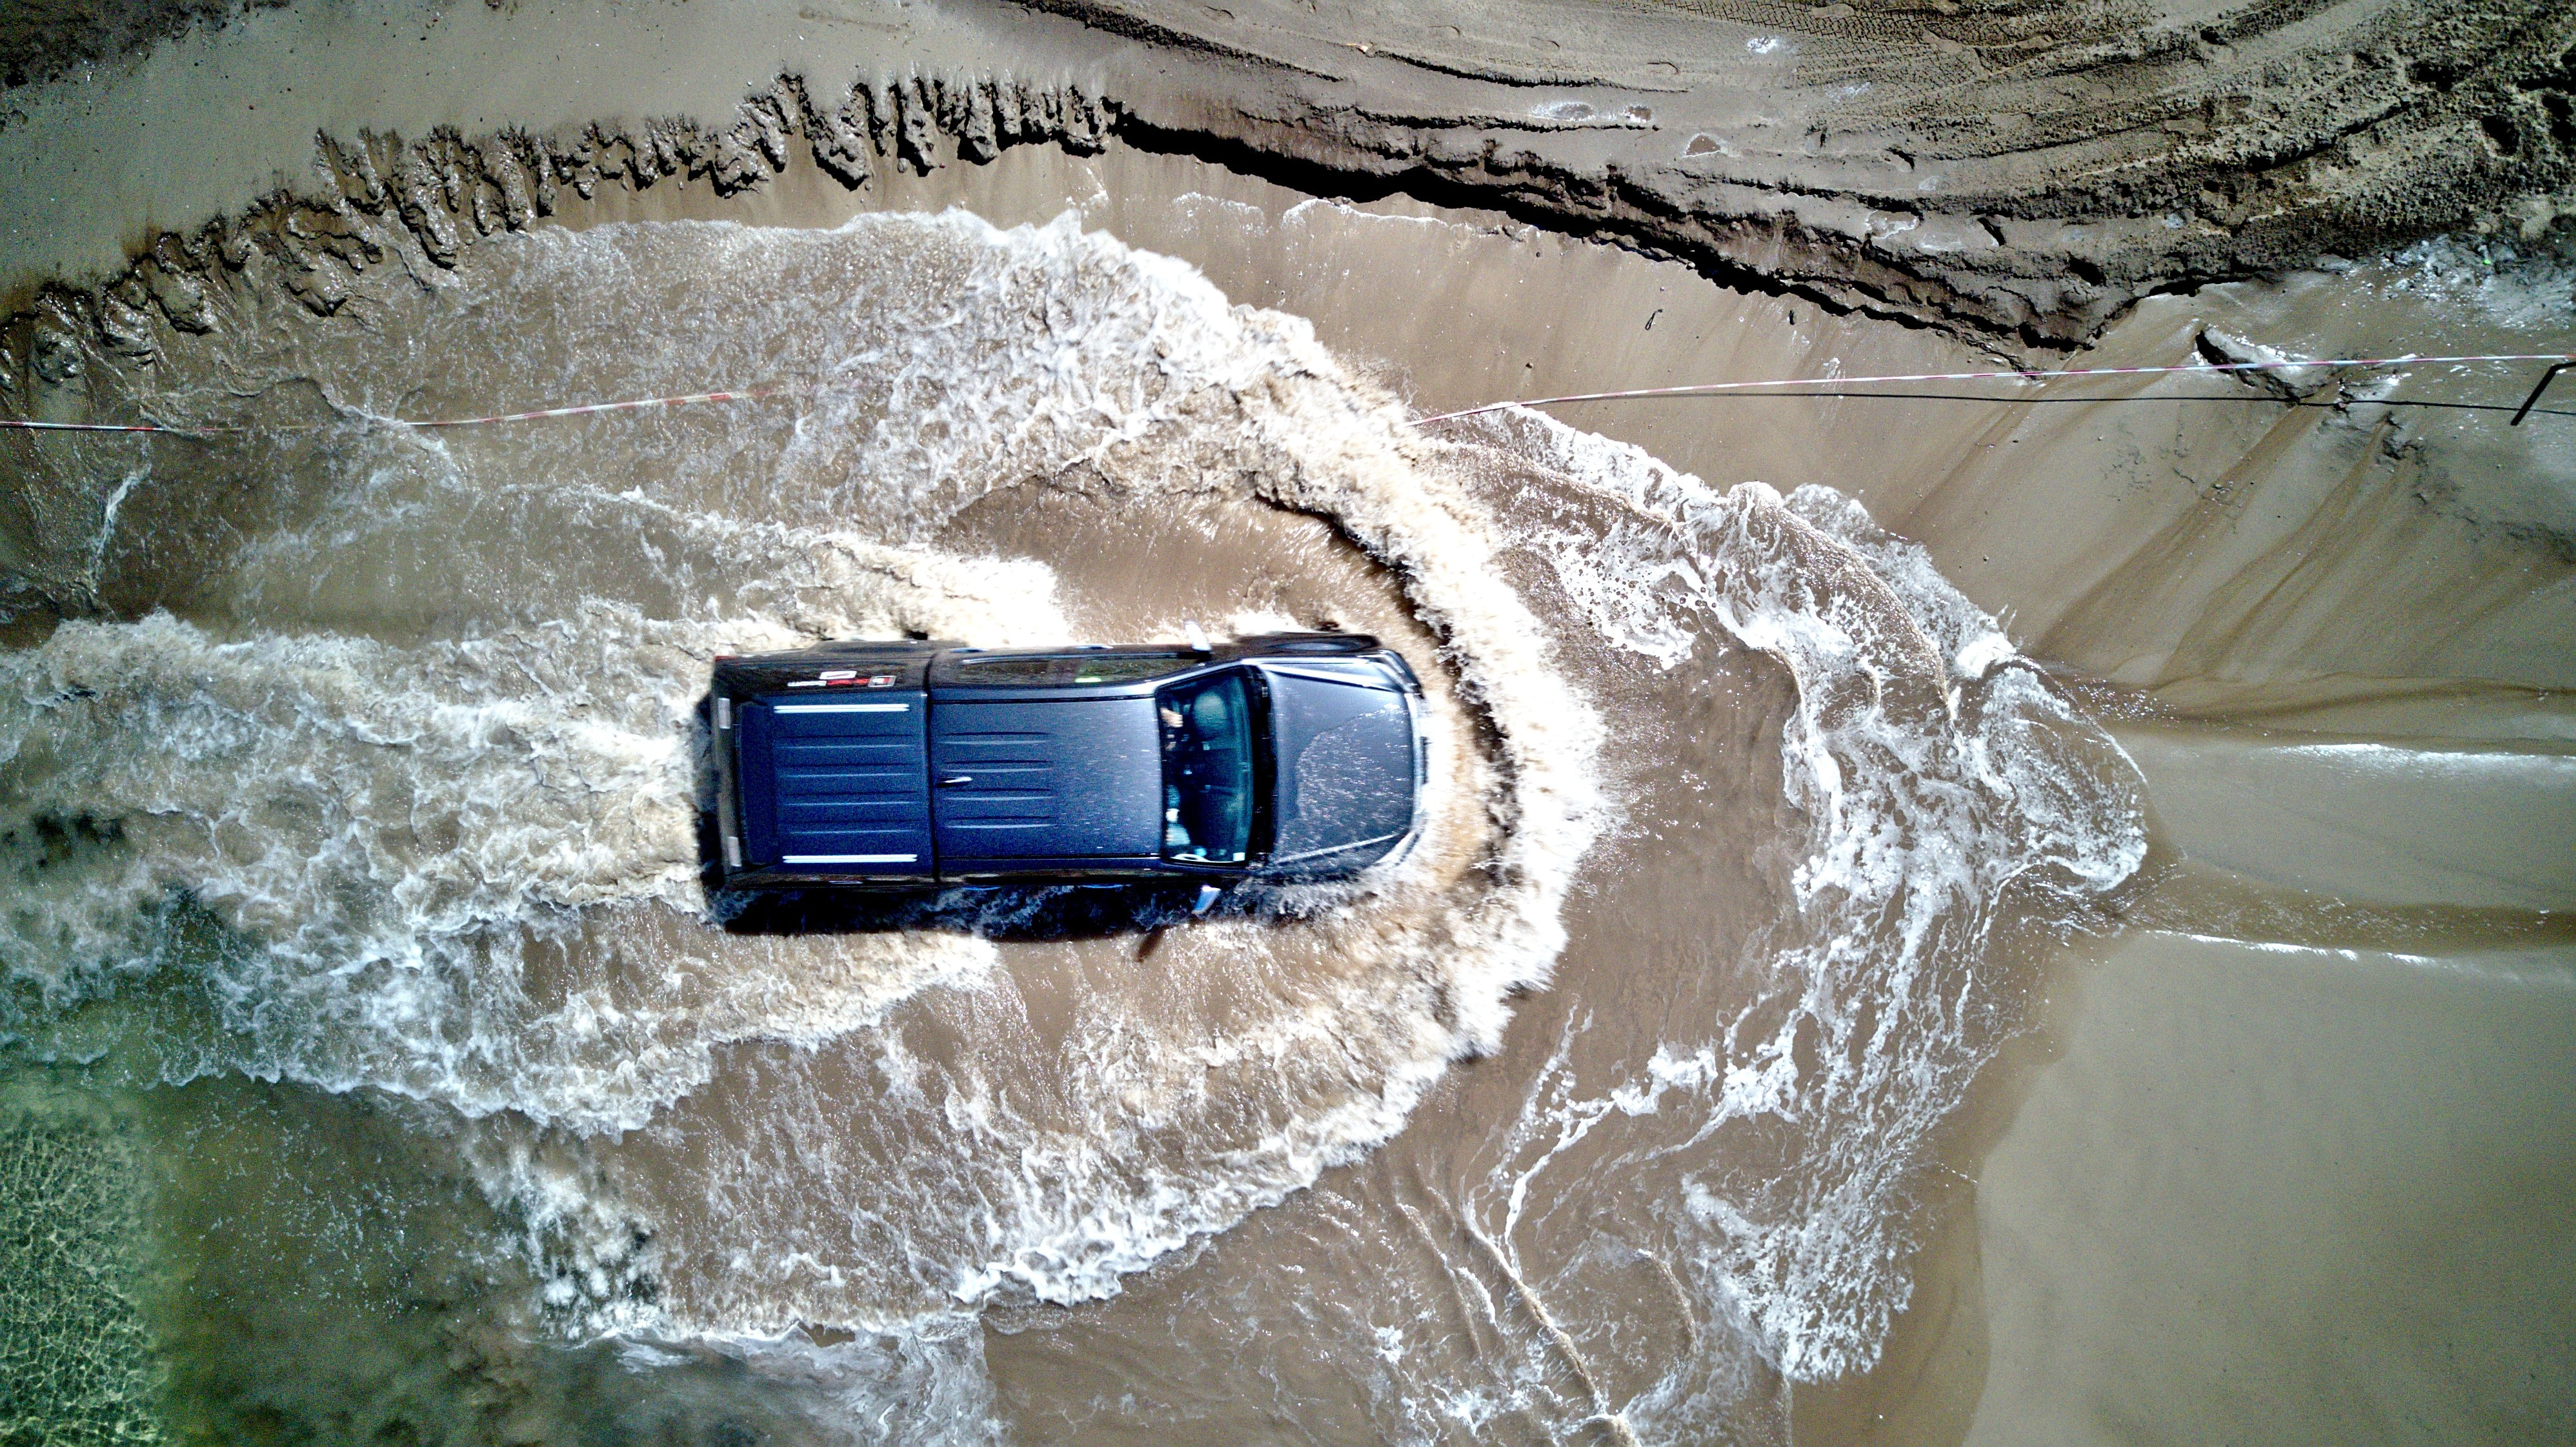 Drone view of the 4x4 SUV driving through the water on the sand beach at Loon op Zand, North Brabant, Netherlands